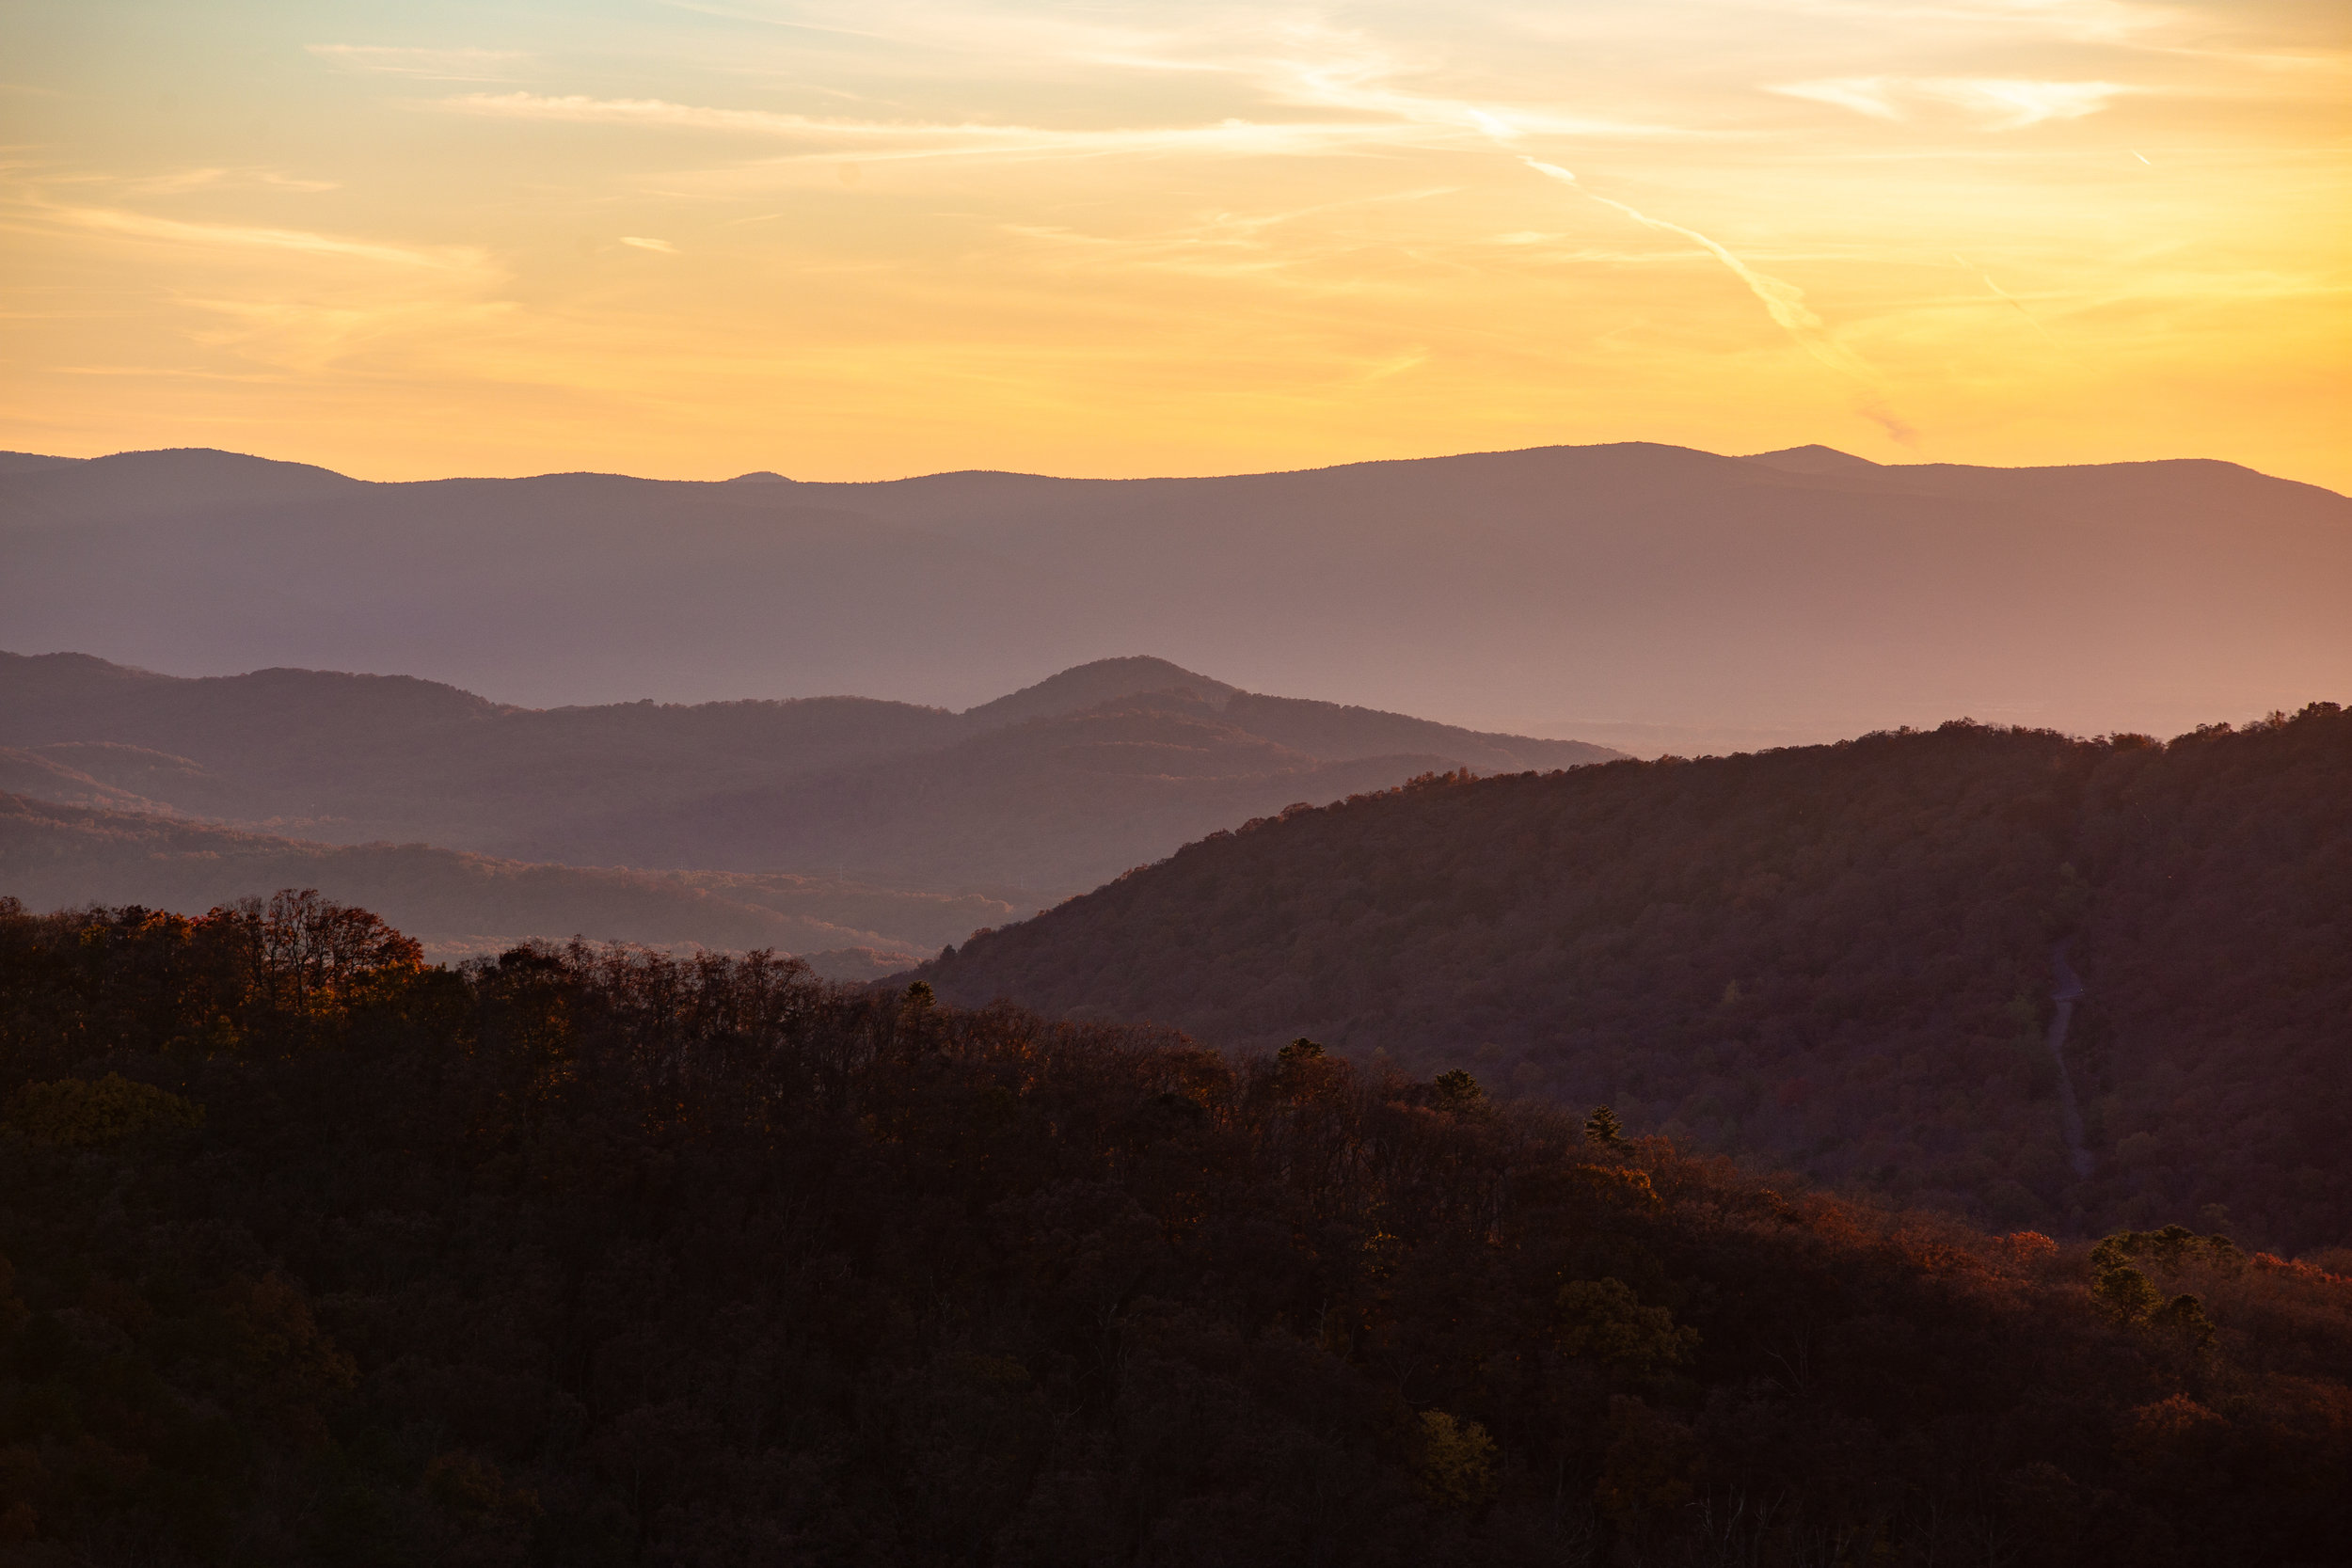 Shenandoah-National-Park-blue-ridge-parkway-day-mountains-afternoon-haze-layers-distance-texture-trees-fall-sunset-evening-red